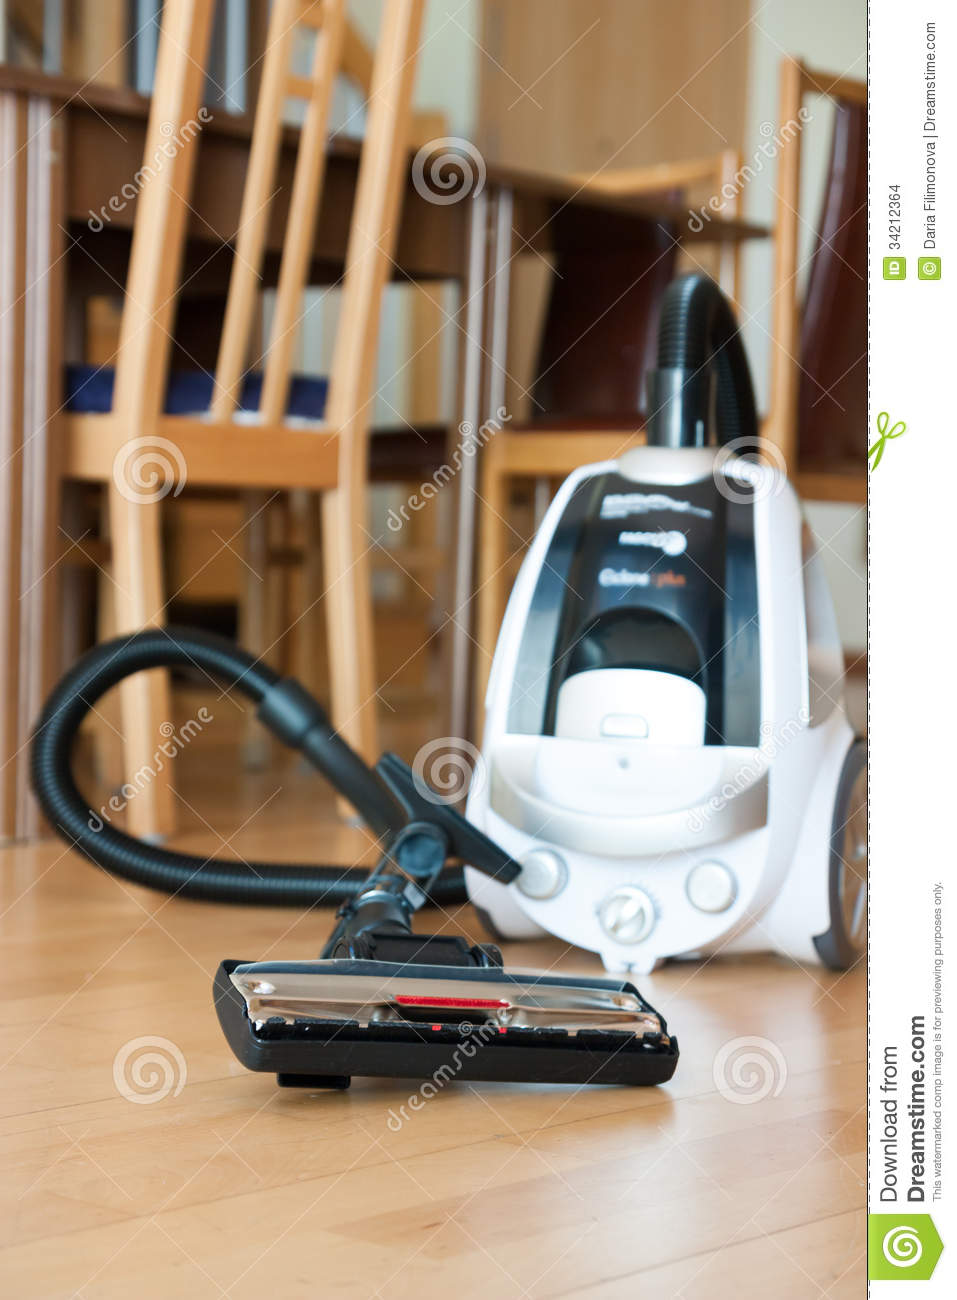 Best Vacuum Cleaner For Apartment Home Interior Design